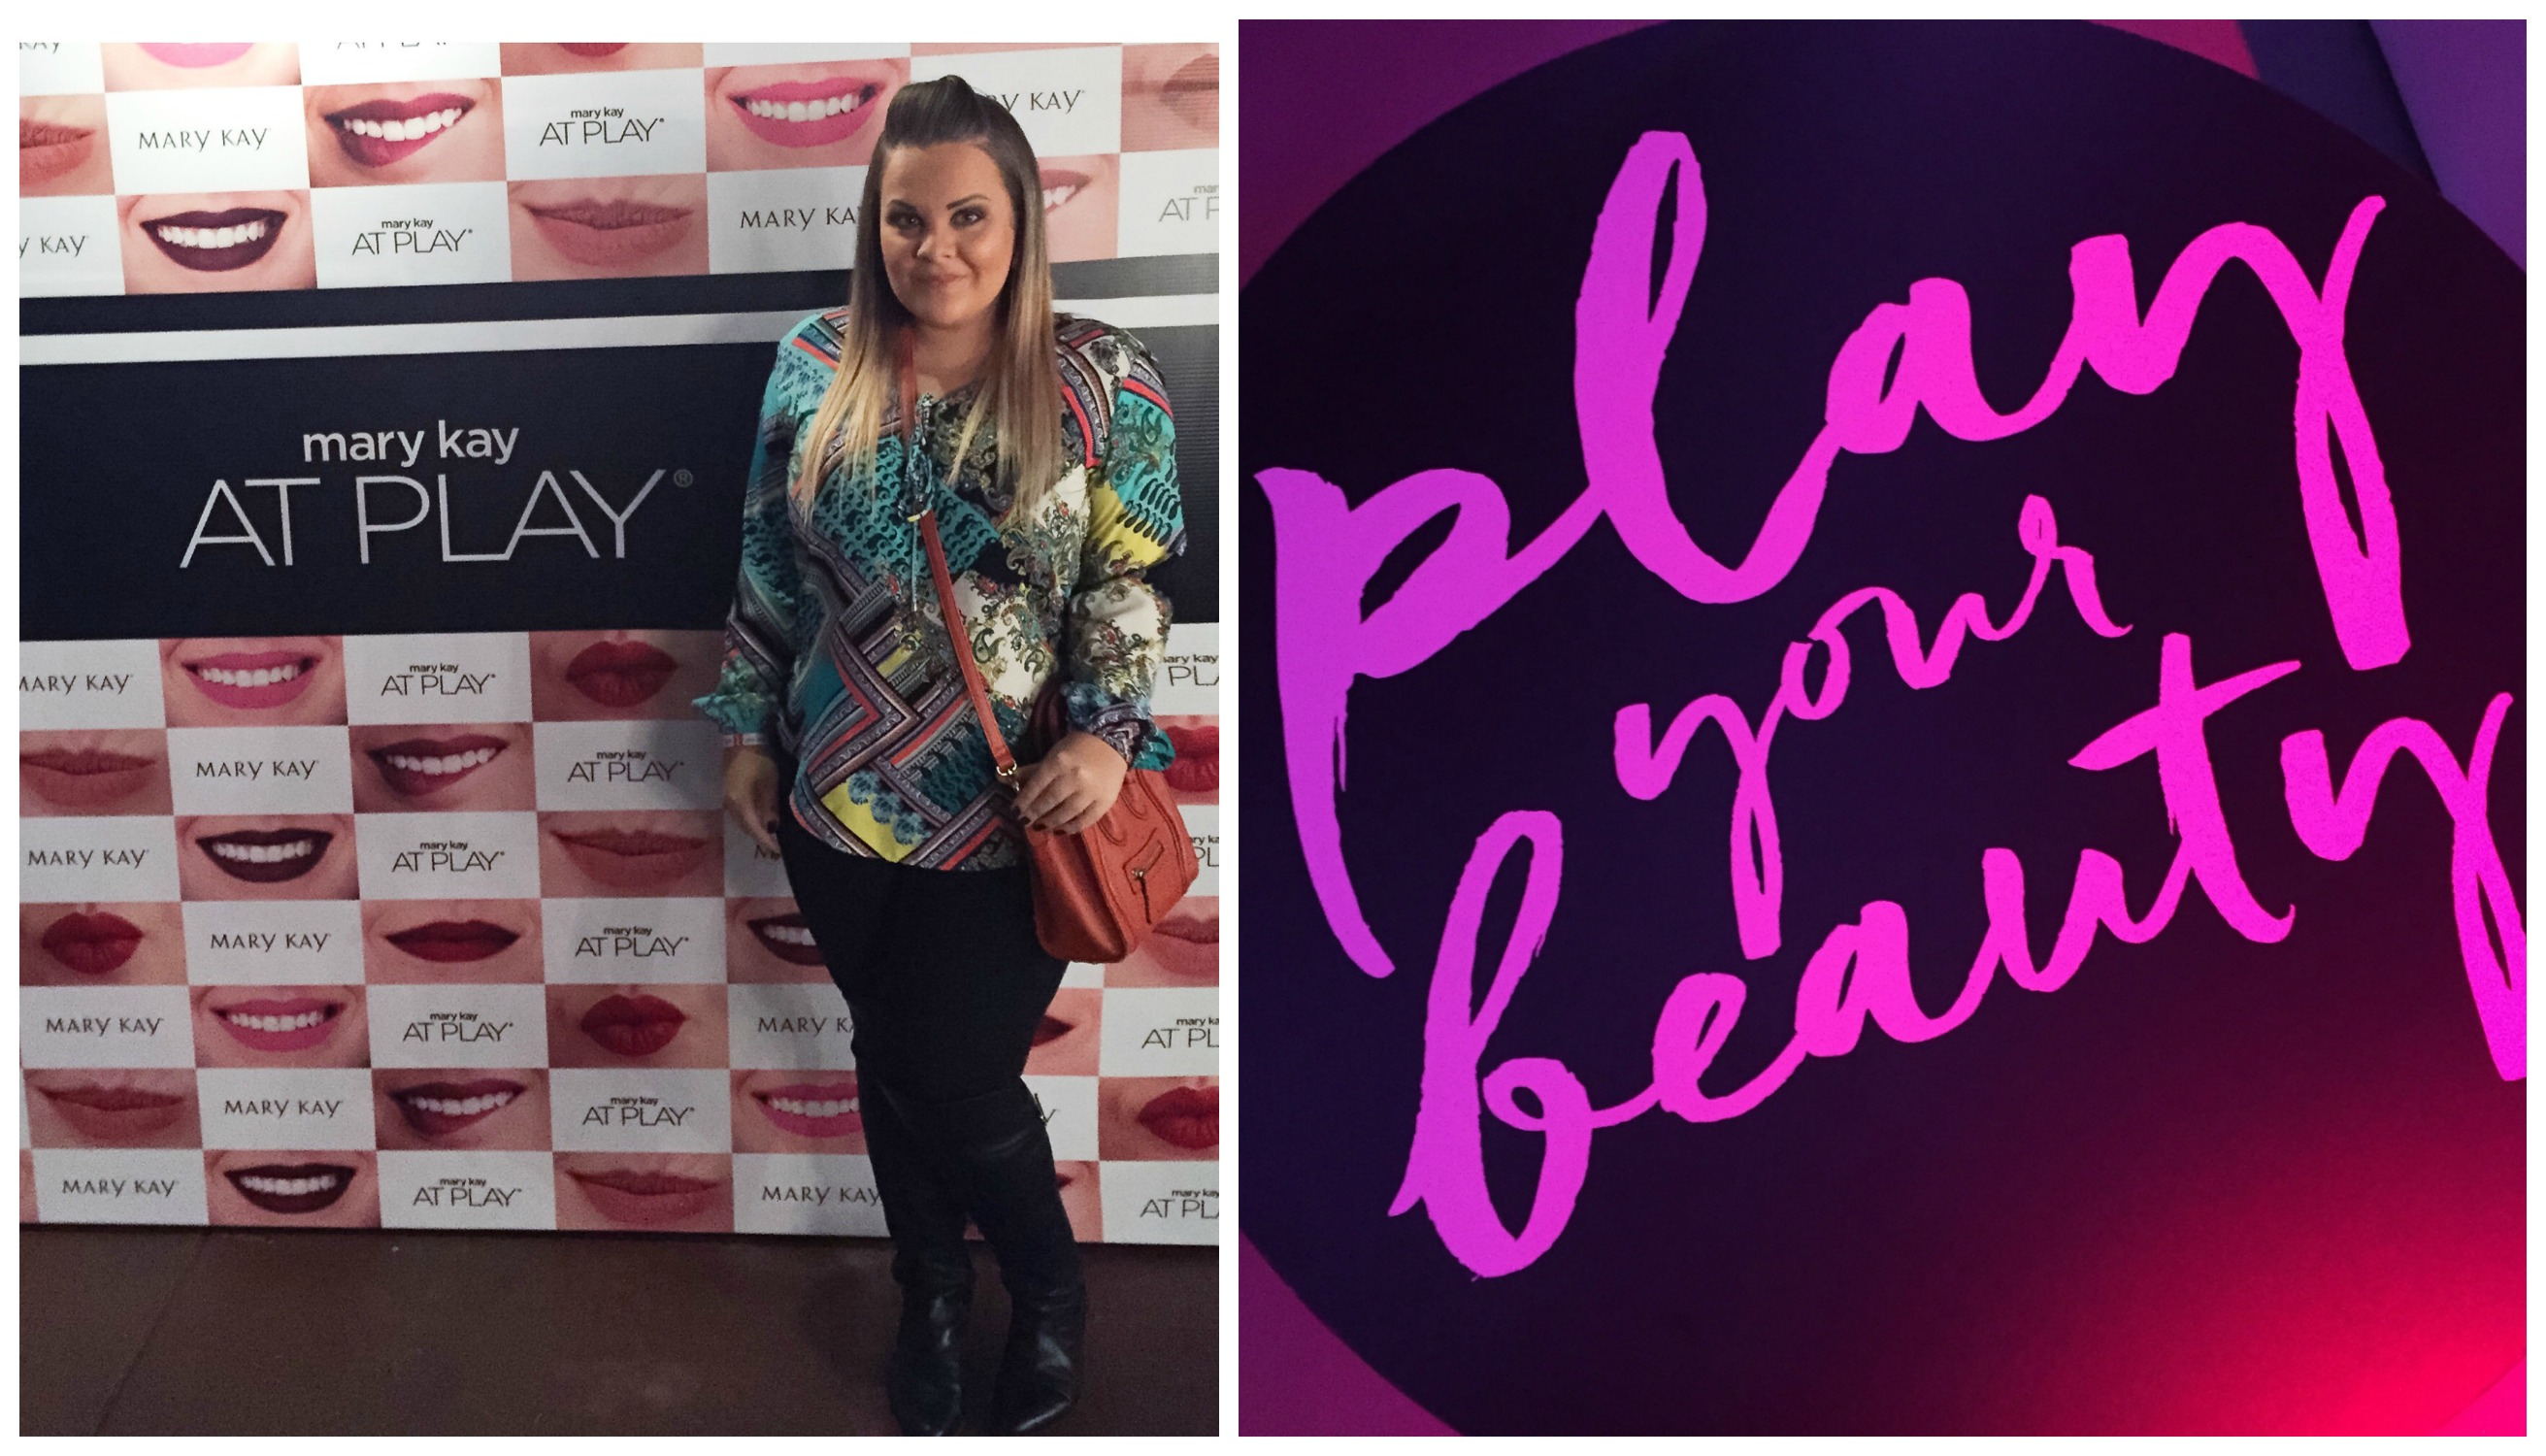 dicas-da-raphinha-marykay-at-play-01